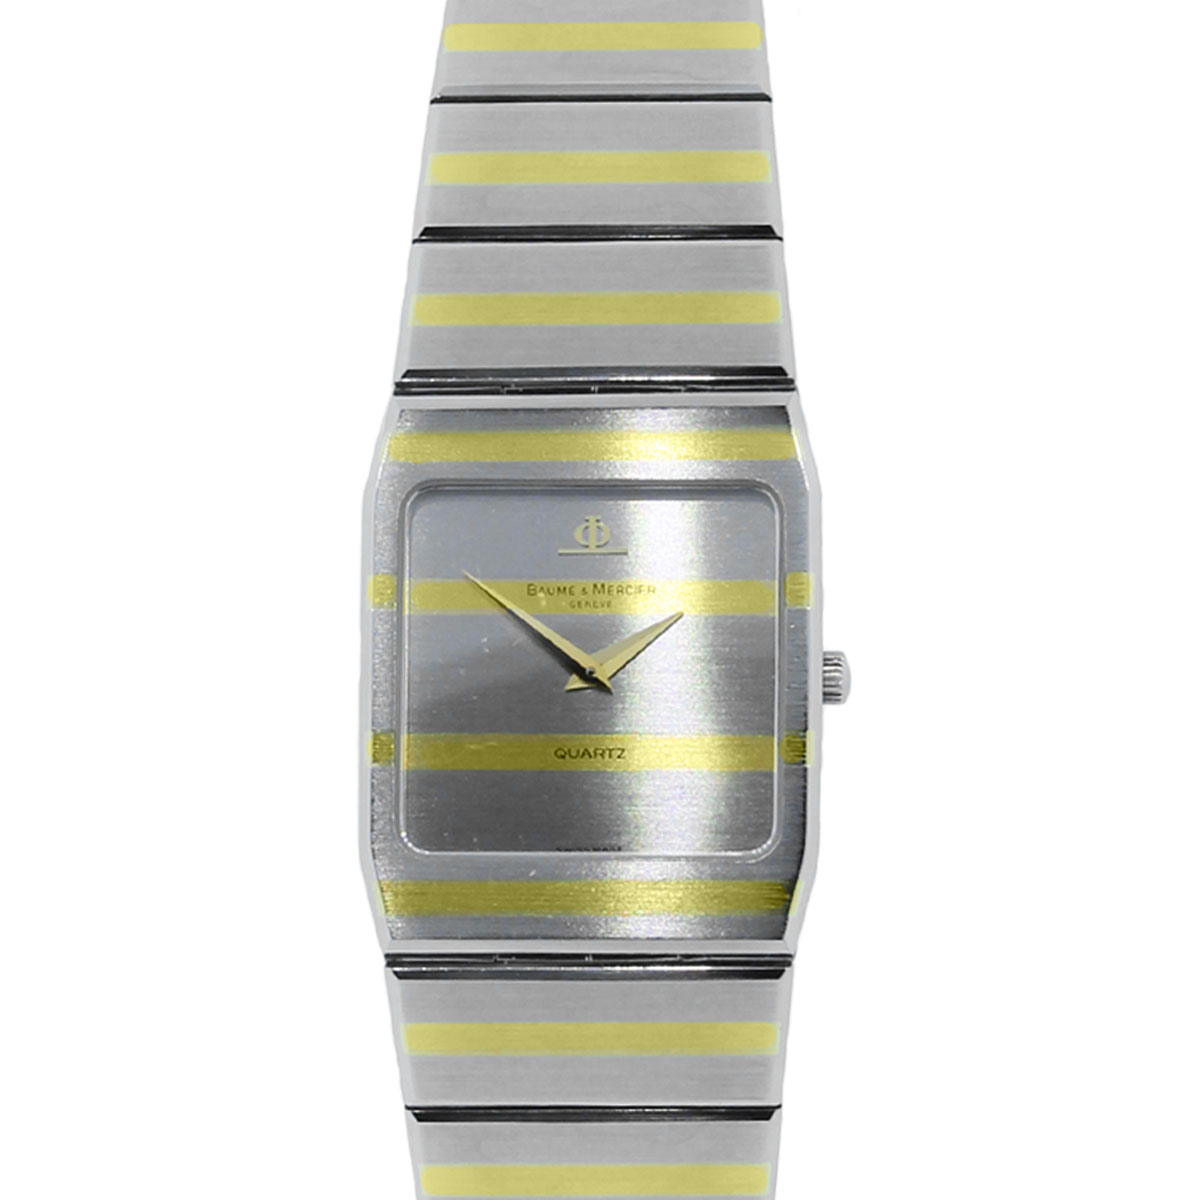 You are viewing this Baume Mercier 5739.038 Two Tone Rectangular Watch!